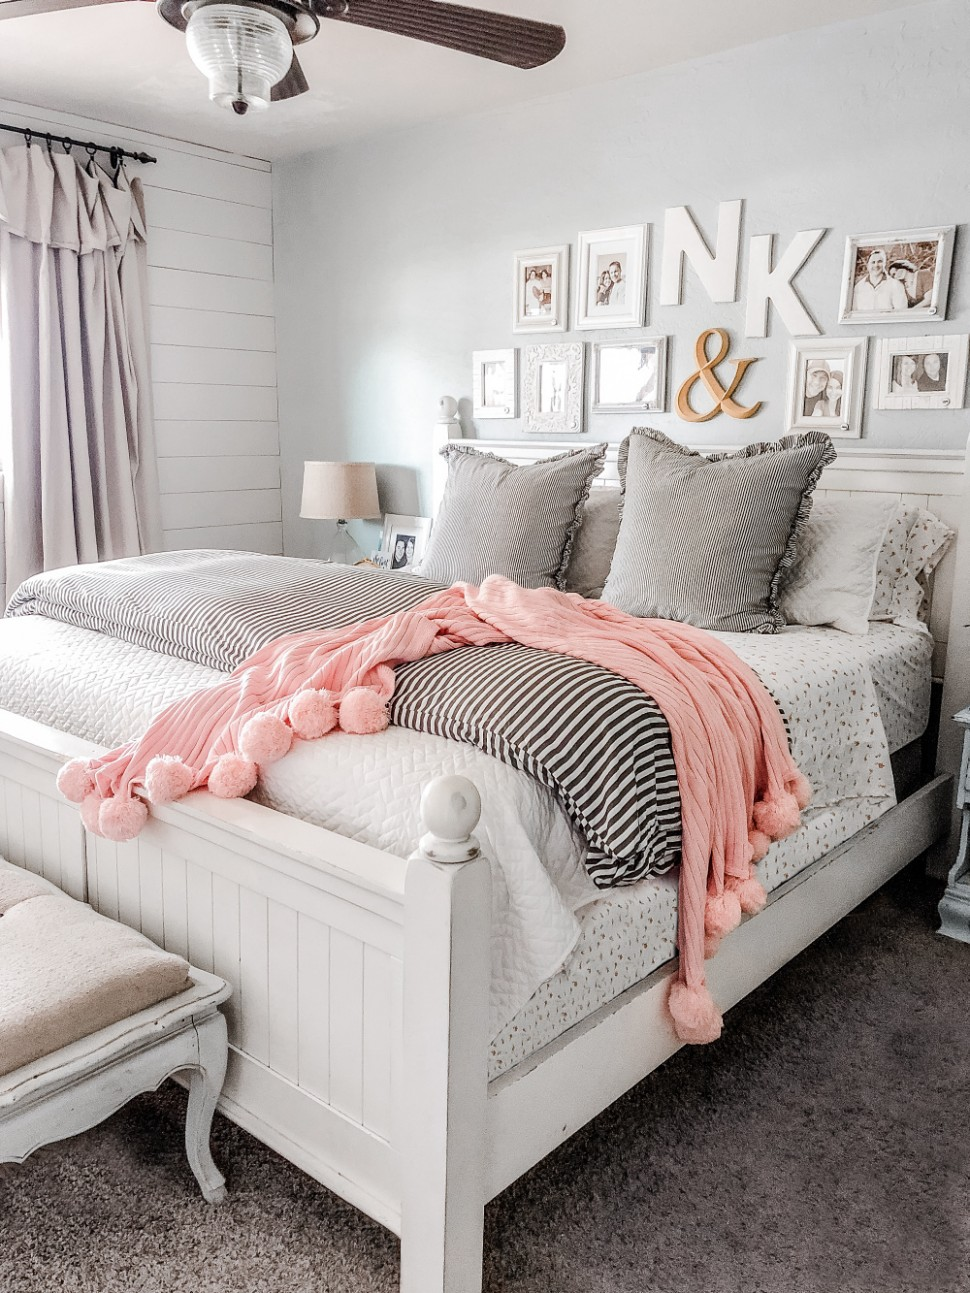 How to Layer a Coverlet Like a Boss - Lolly Jane - Bedroom Quilt Ideas